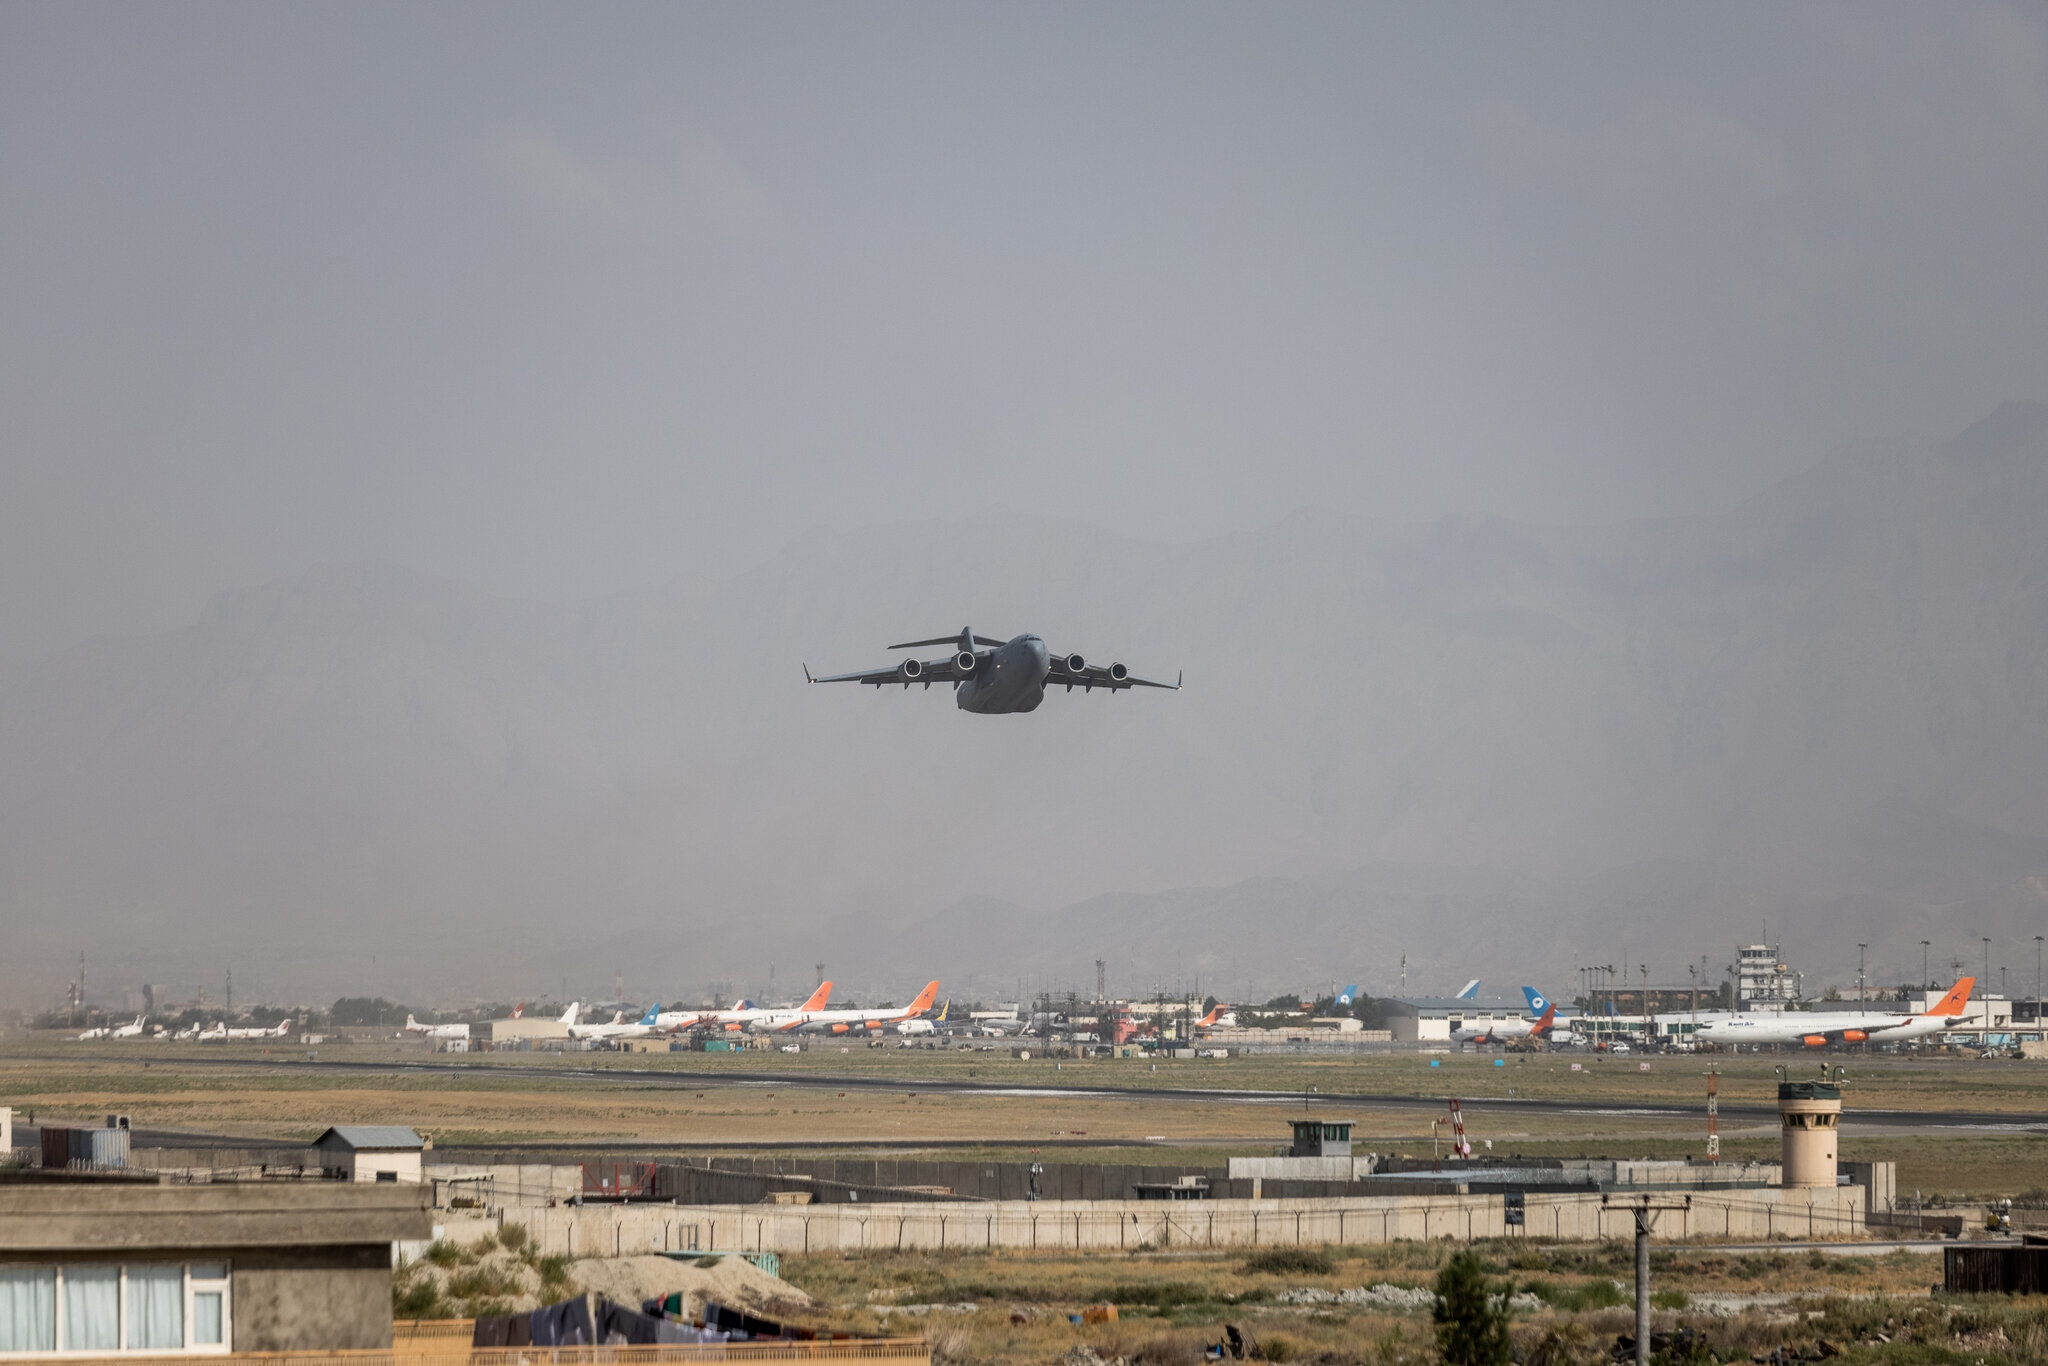 Indian Air Force aircraft likely to rescue 48 Nepalis stranded in Afghanistan